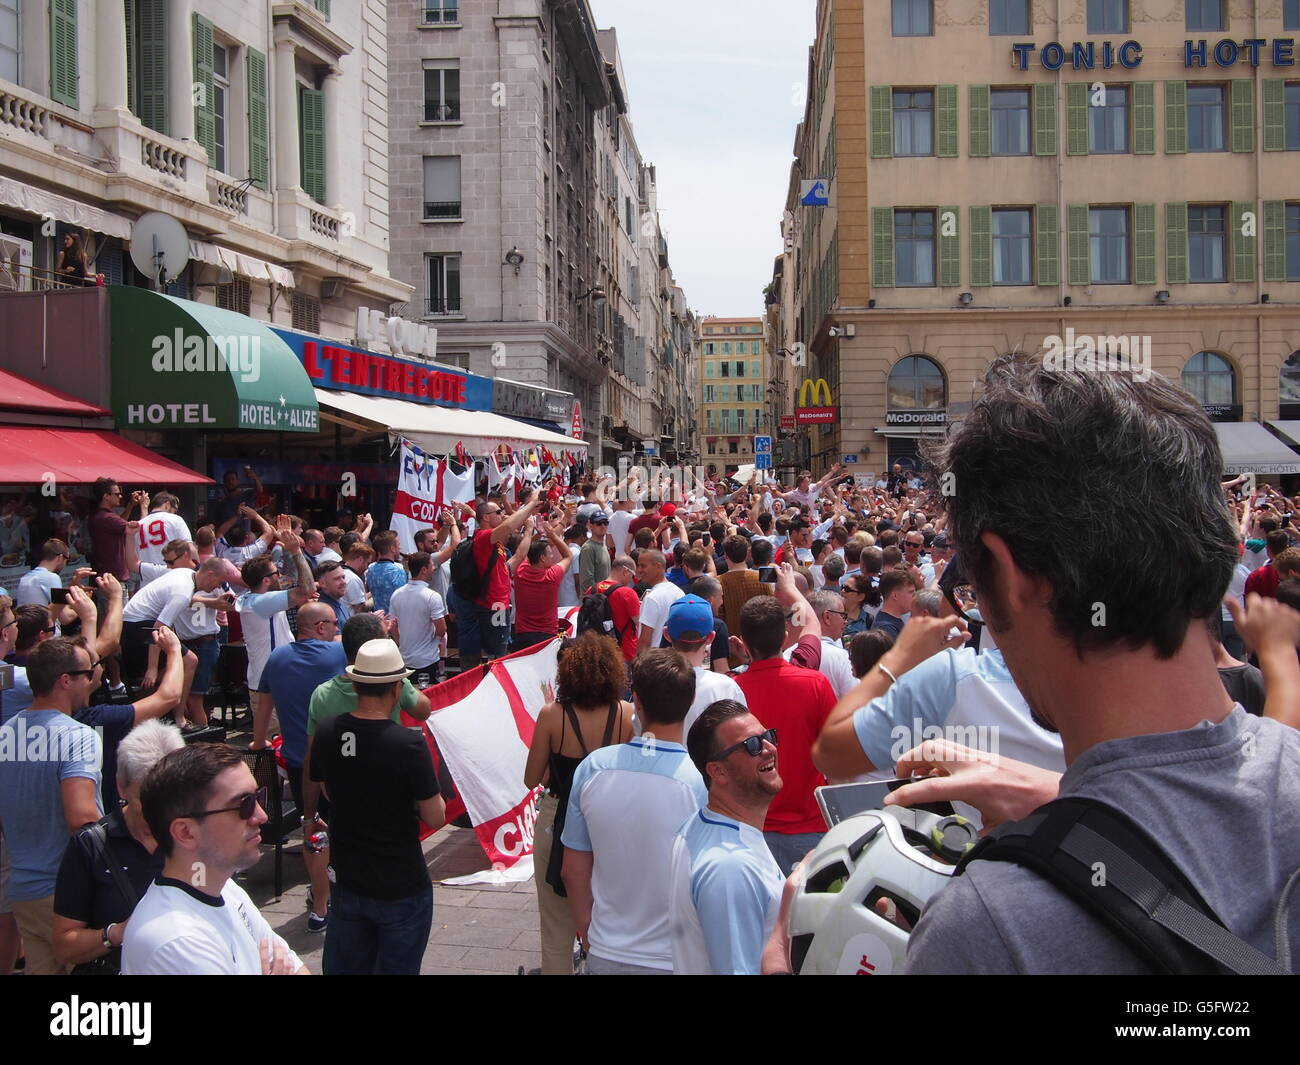 Marseille, France - June 11, 2016: England fans supporting their team in the infamous 1-1 draw with Russia at Euro - Stock Image